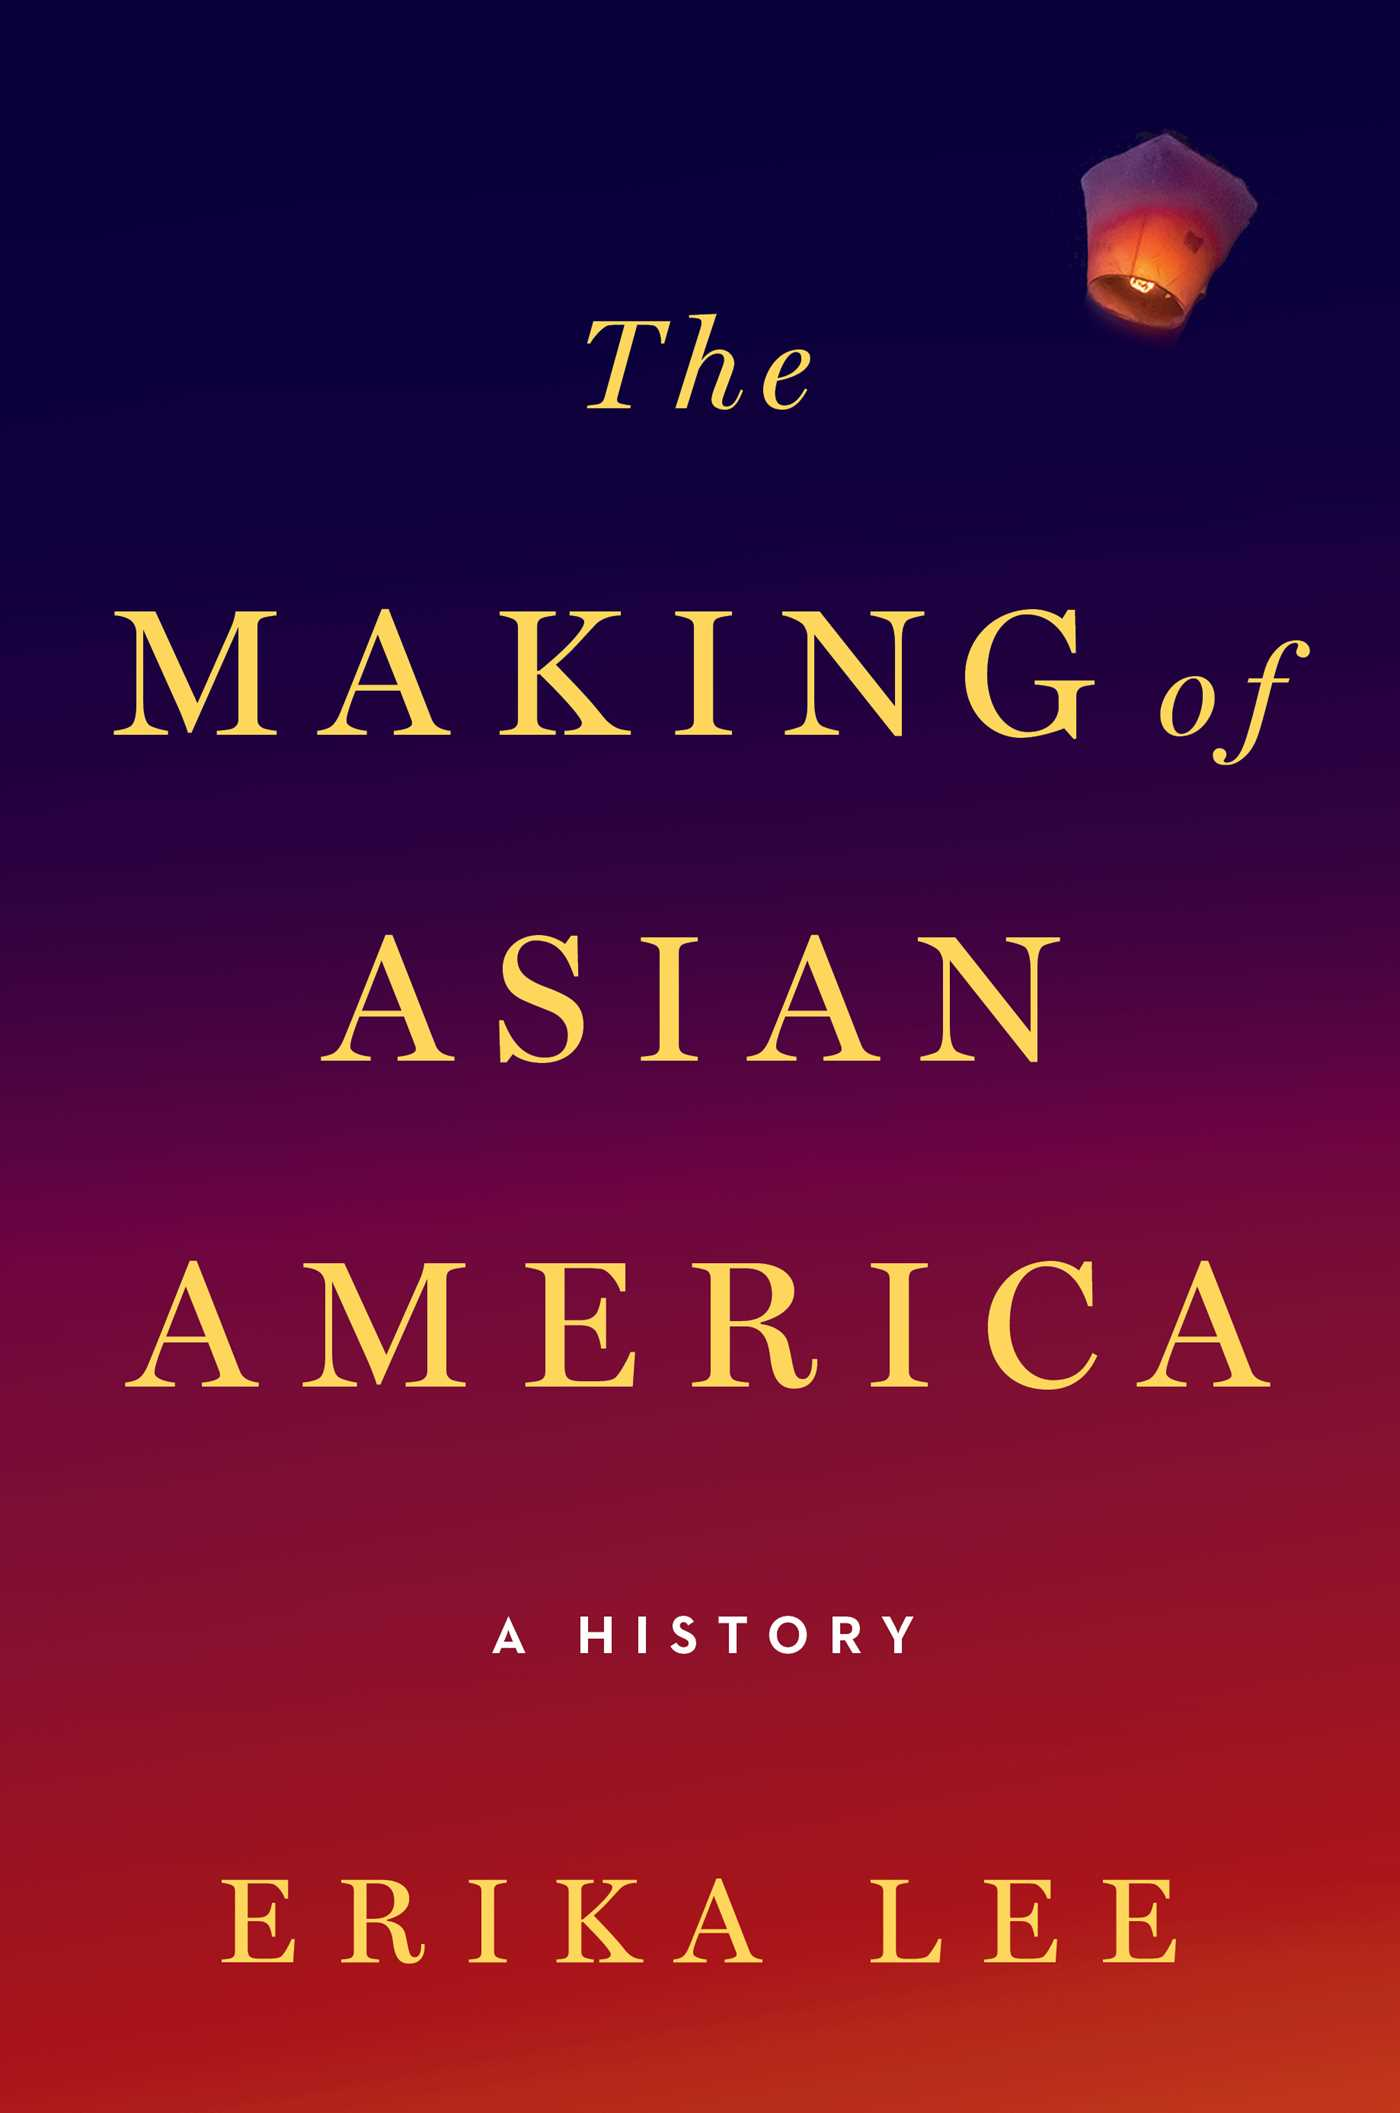 the making of asian america book by erika lee official the making of asian america book by erika lee official publisher page simon schuster